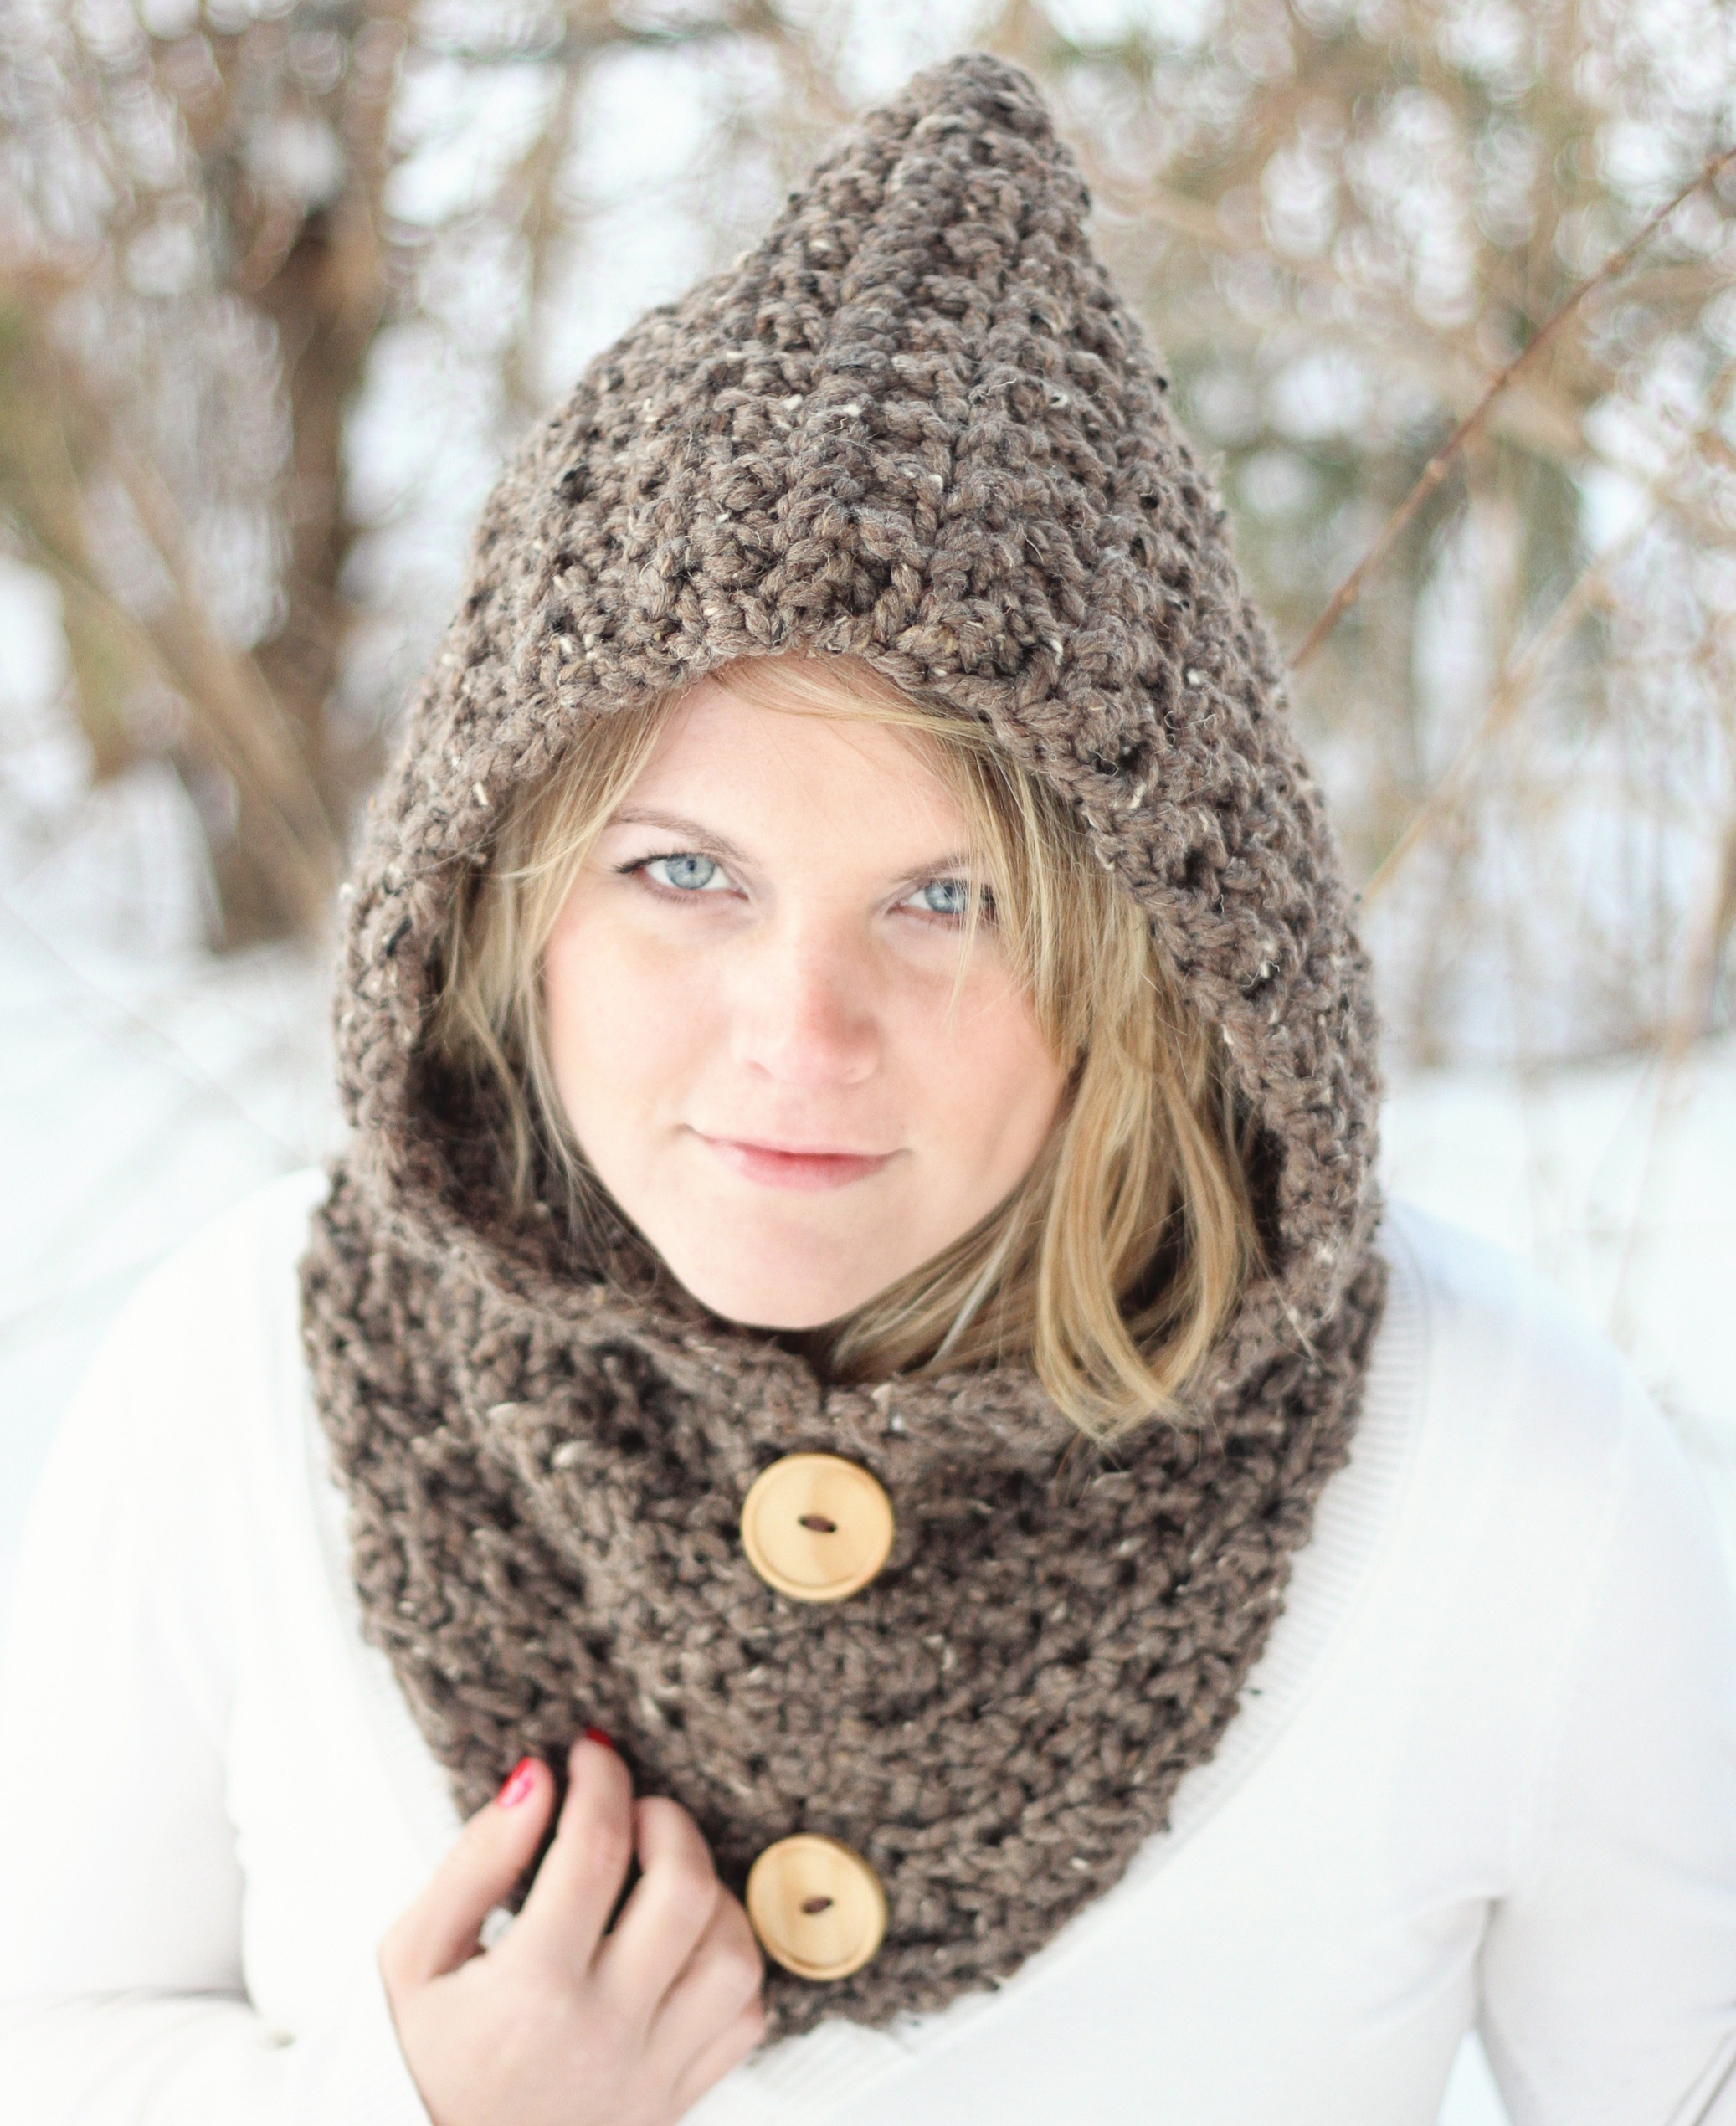 Crochet Hoodie Awesome Crochet Pattern Hoodie Cowl the toronto On Storenvy Of Awesome 43 Images Crochet Hoodie